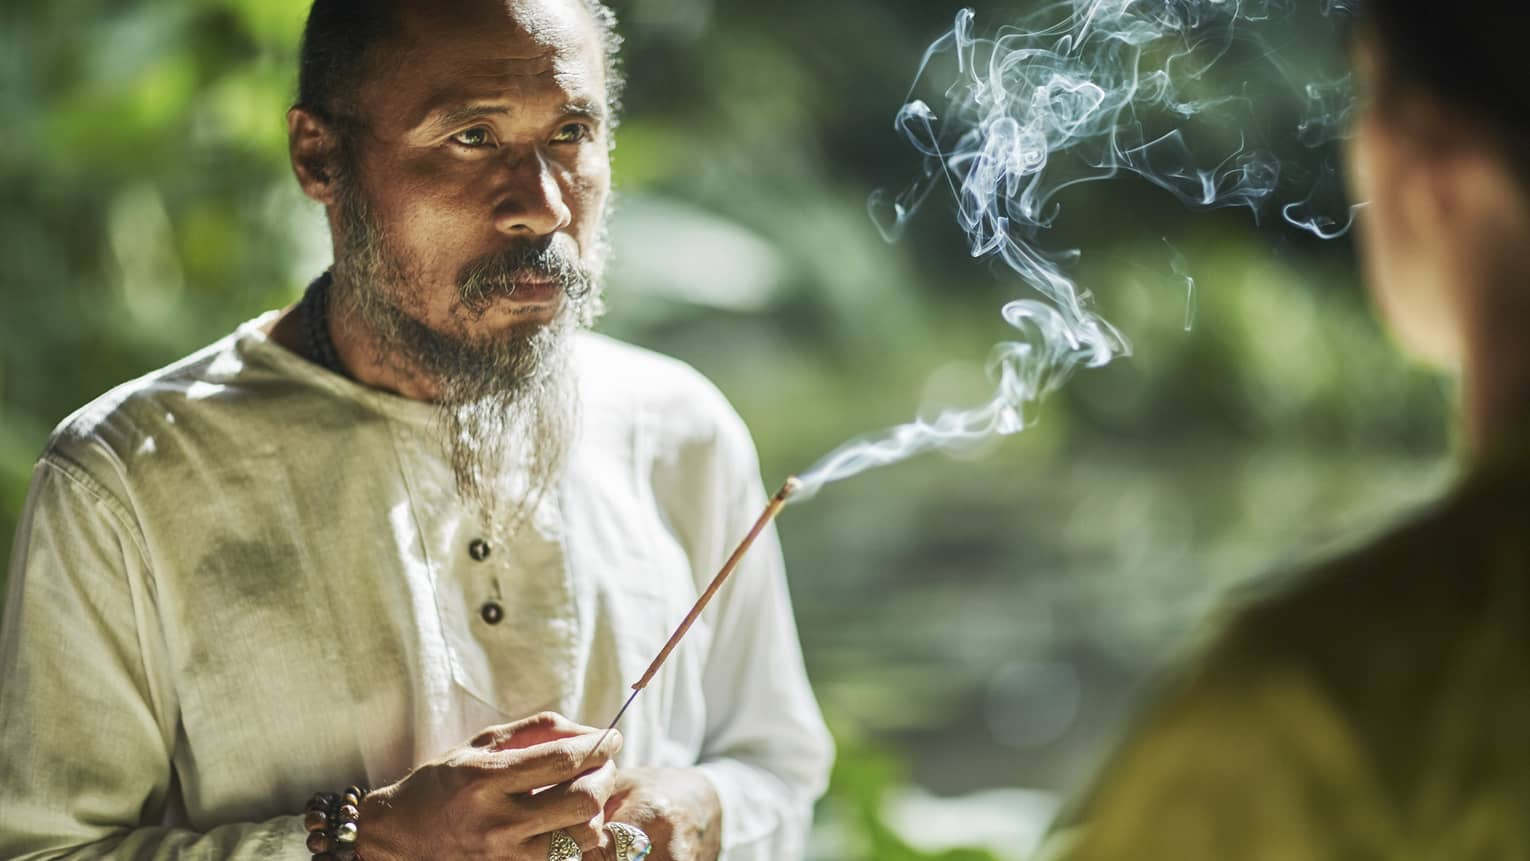 Balinese healer with burning incense